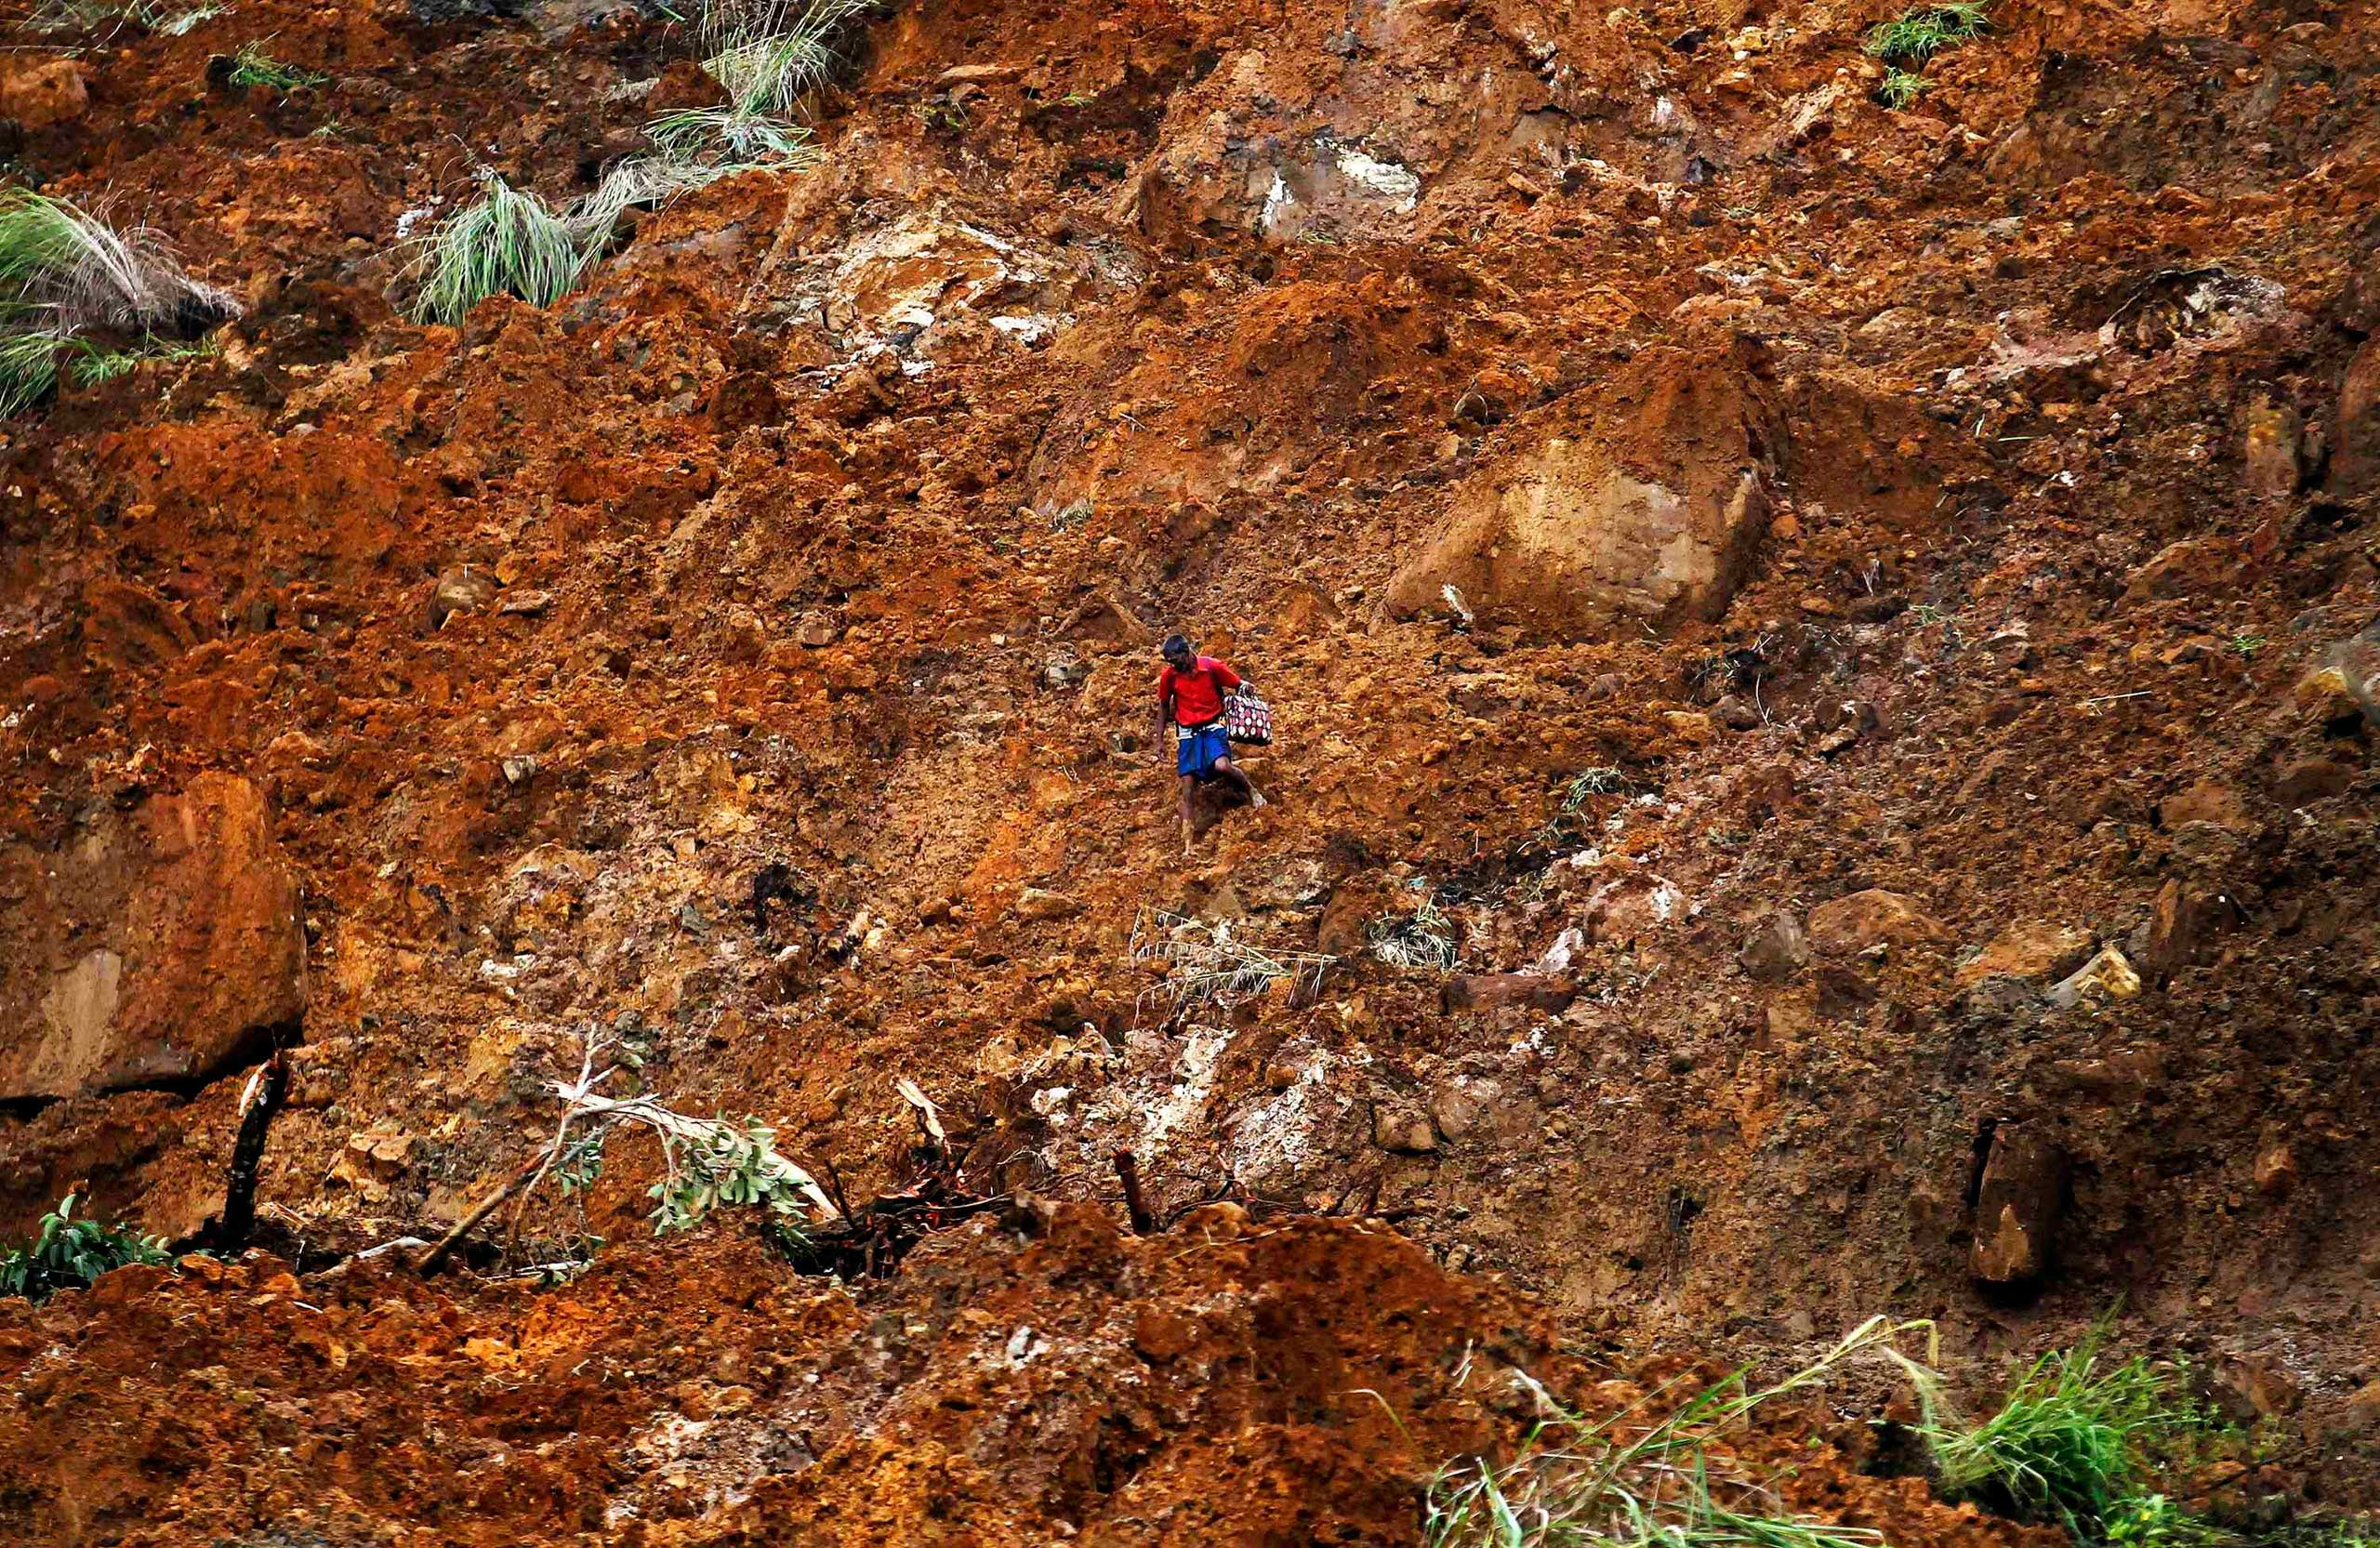 Oct. 30, 2014. A man carrying a suitcase crosses a muddy slope at the site of a landslide at the Koslanda tea plantation near Haldummulla. Hopes of finding survivors under the mud and rubble of the landslide in south-central Sri Lanka had run out by first light on Thursday, though a government minister cut the estimated death toll to more than 100 from 300 the previous night.